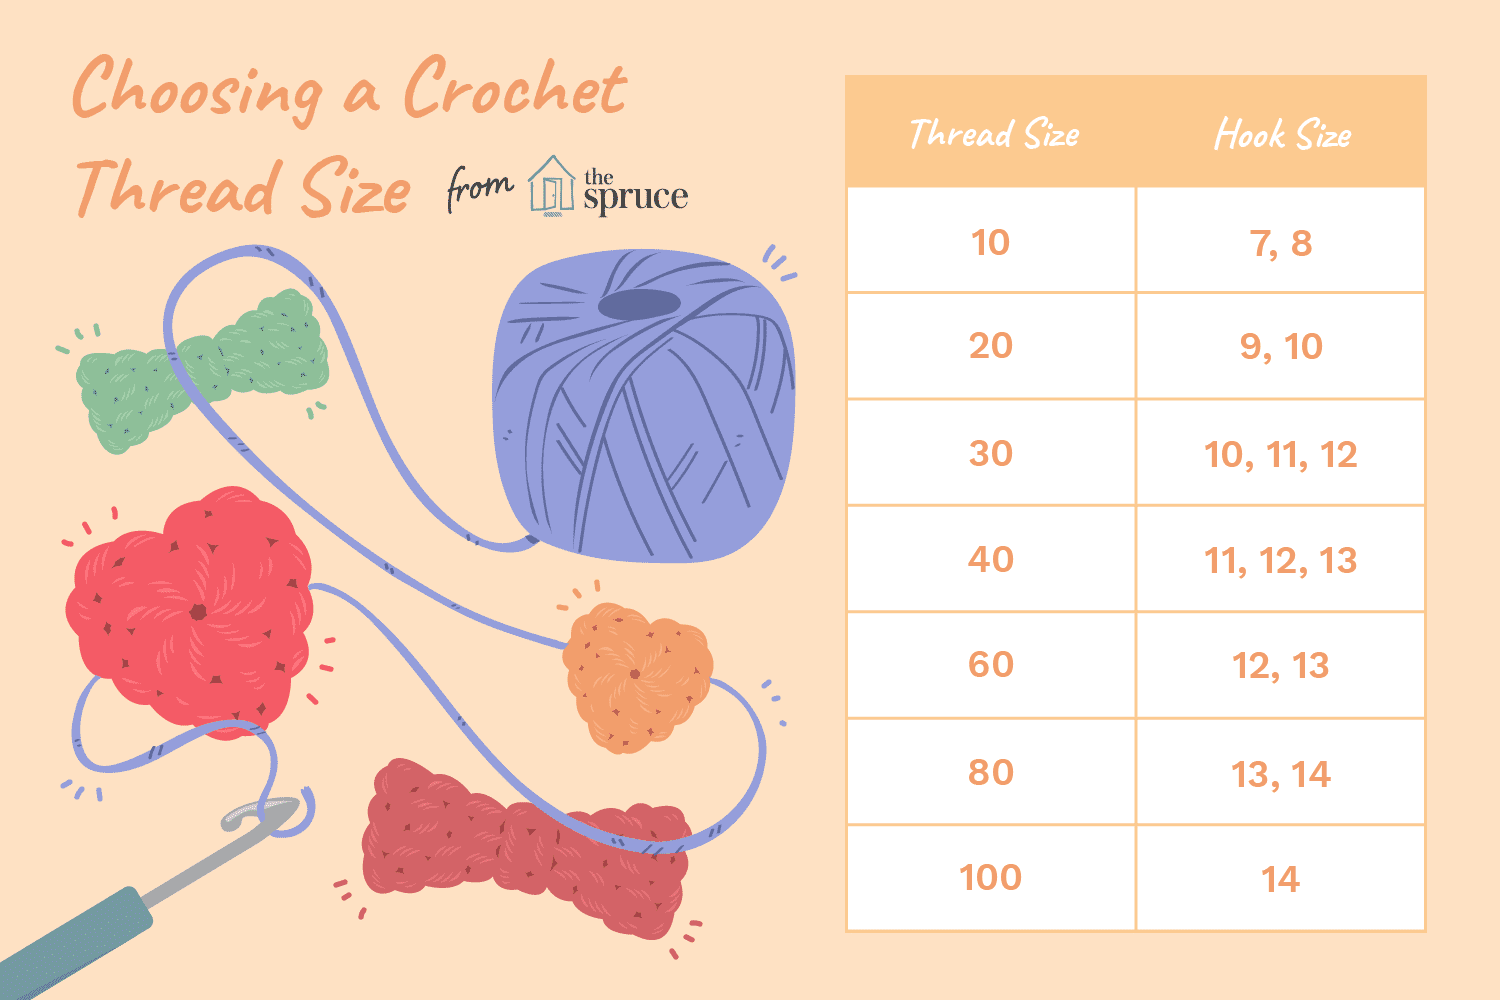 Understanding Crochet Thread Sizes